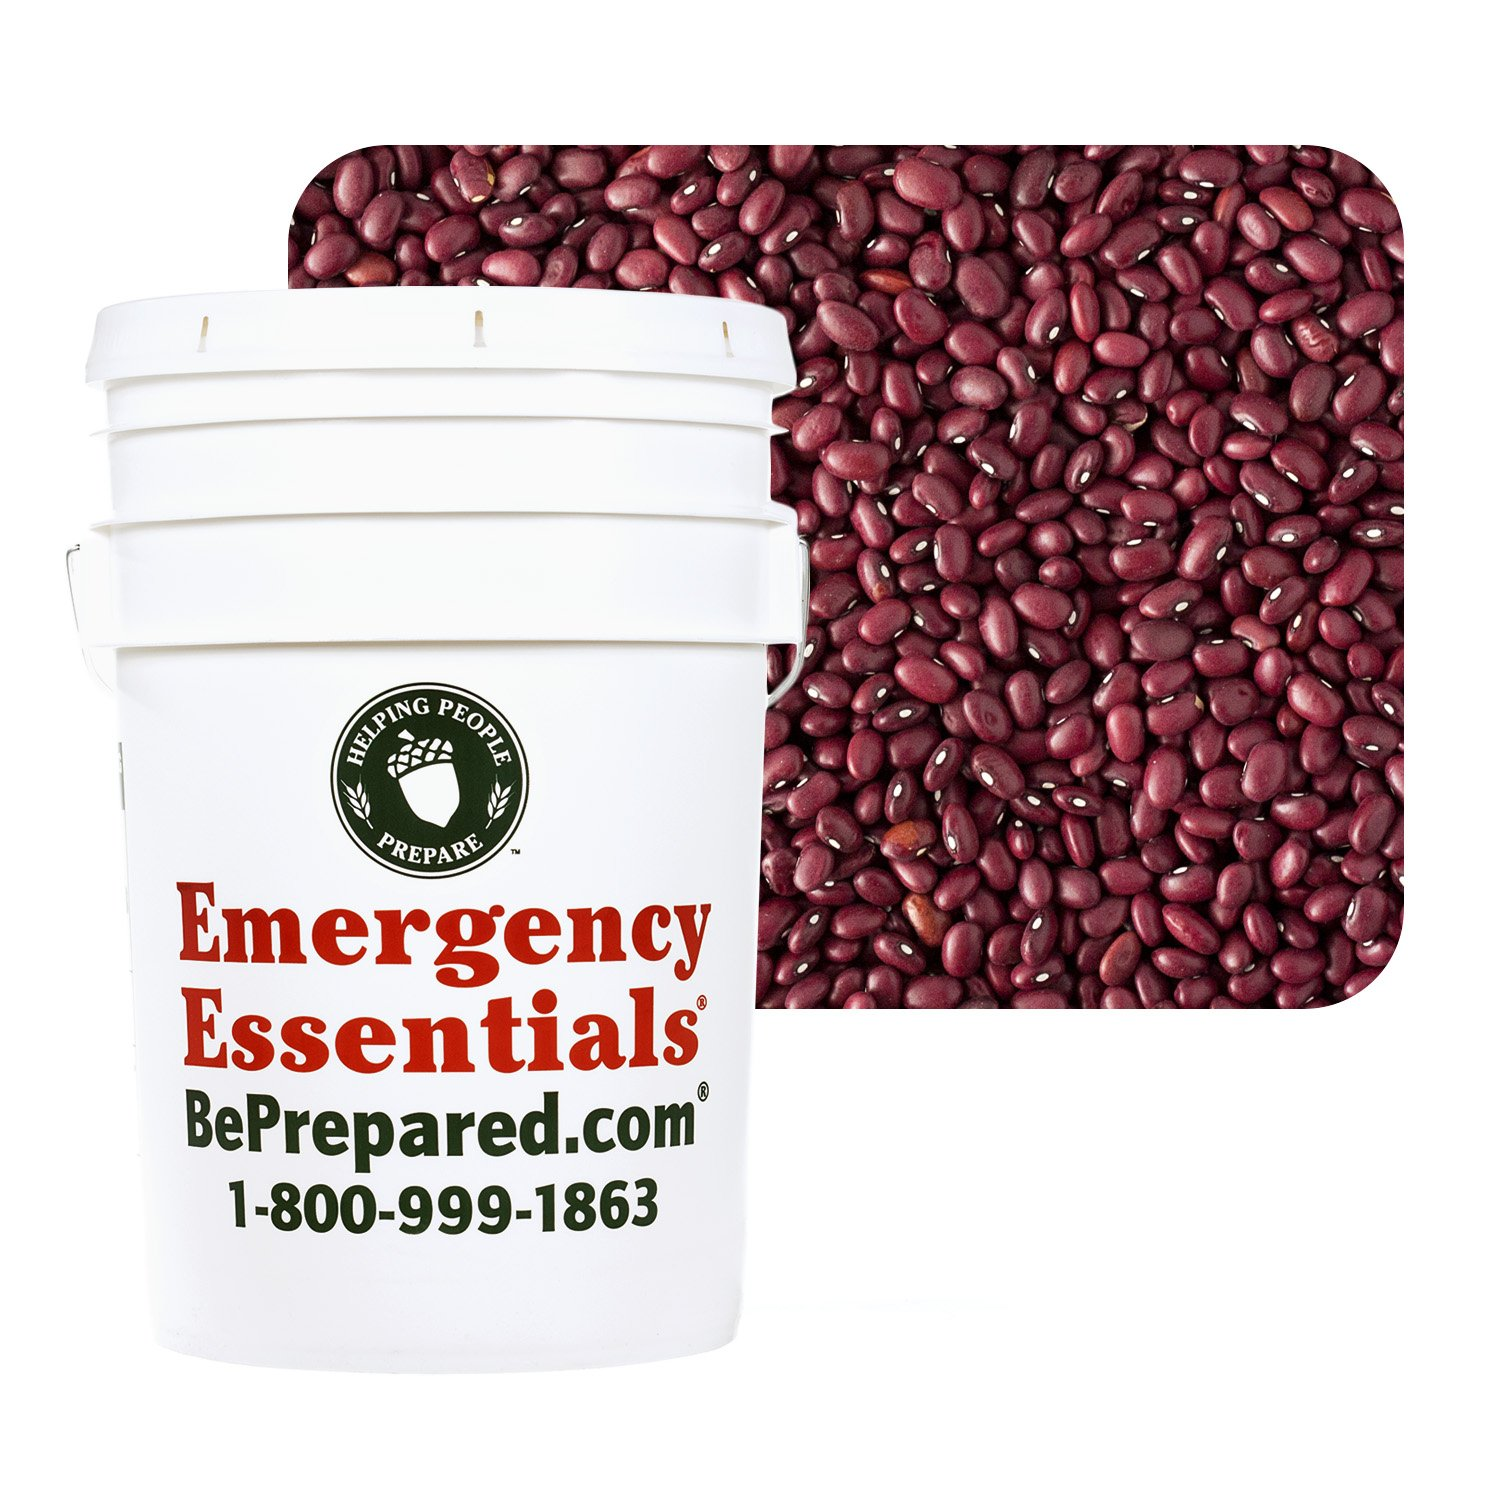 Superpail Small Red (Chili) Beans